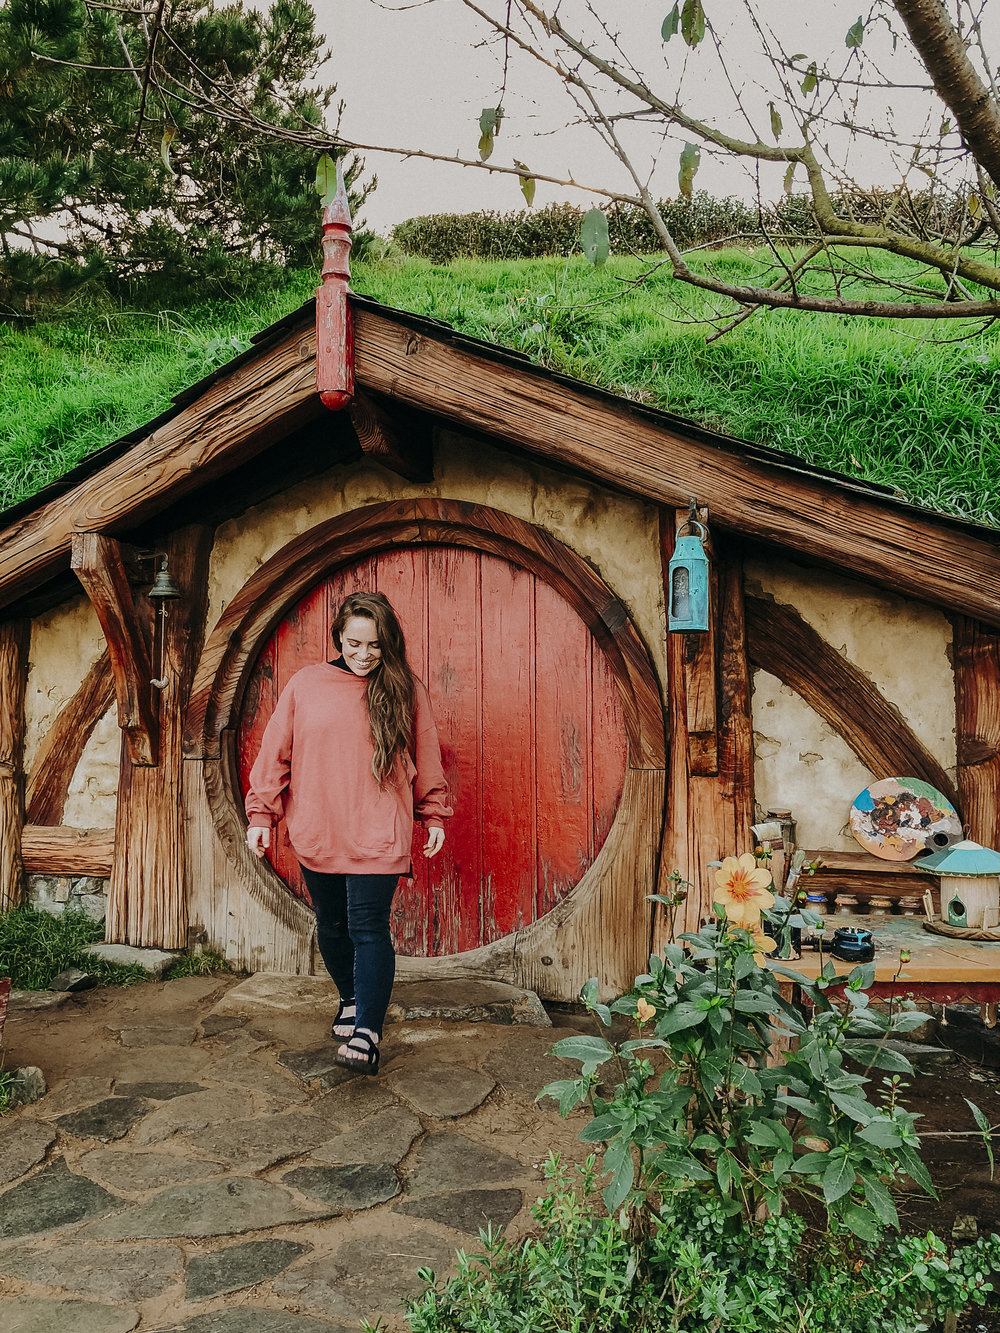 This Hobbit Home is the only one that visitors are allowed inside. Each home is recognized by the NZ Government as an actual house, but the insides are still just dirt and wood framing.